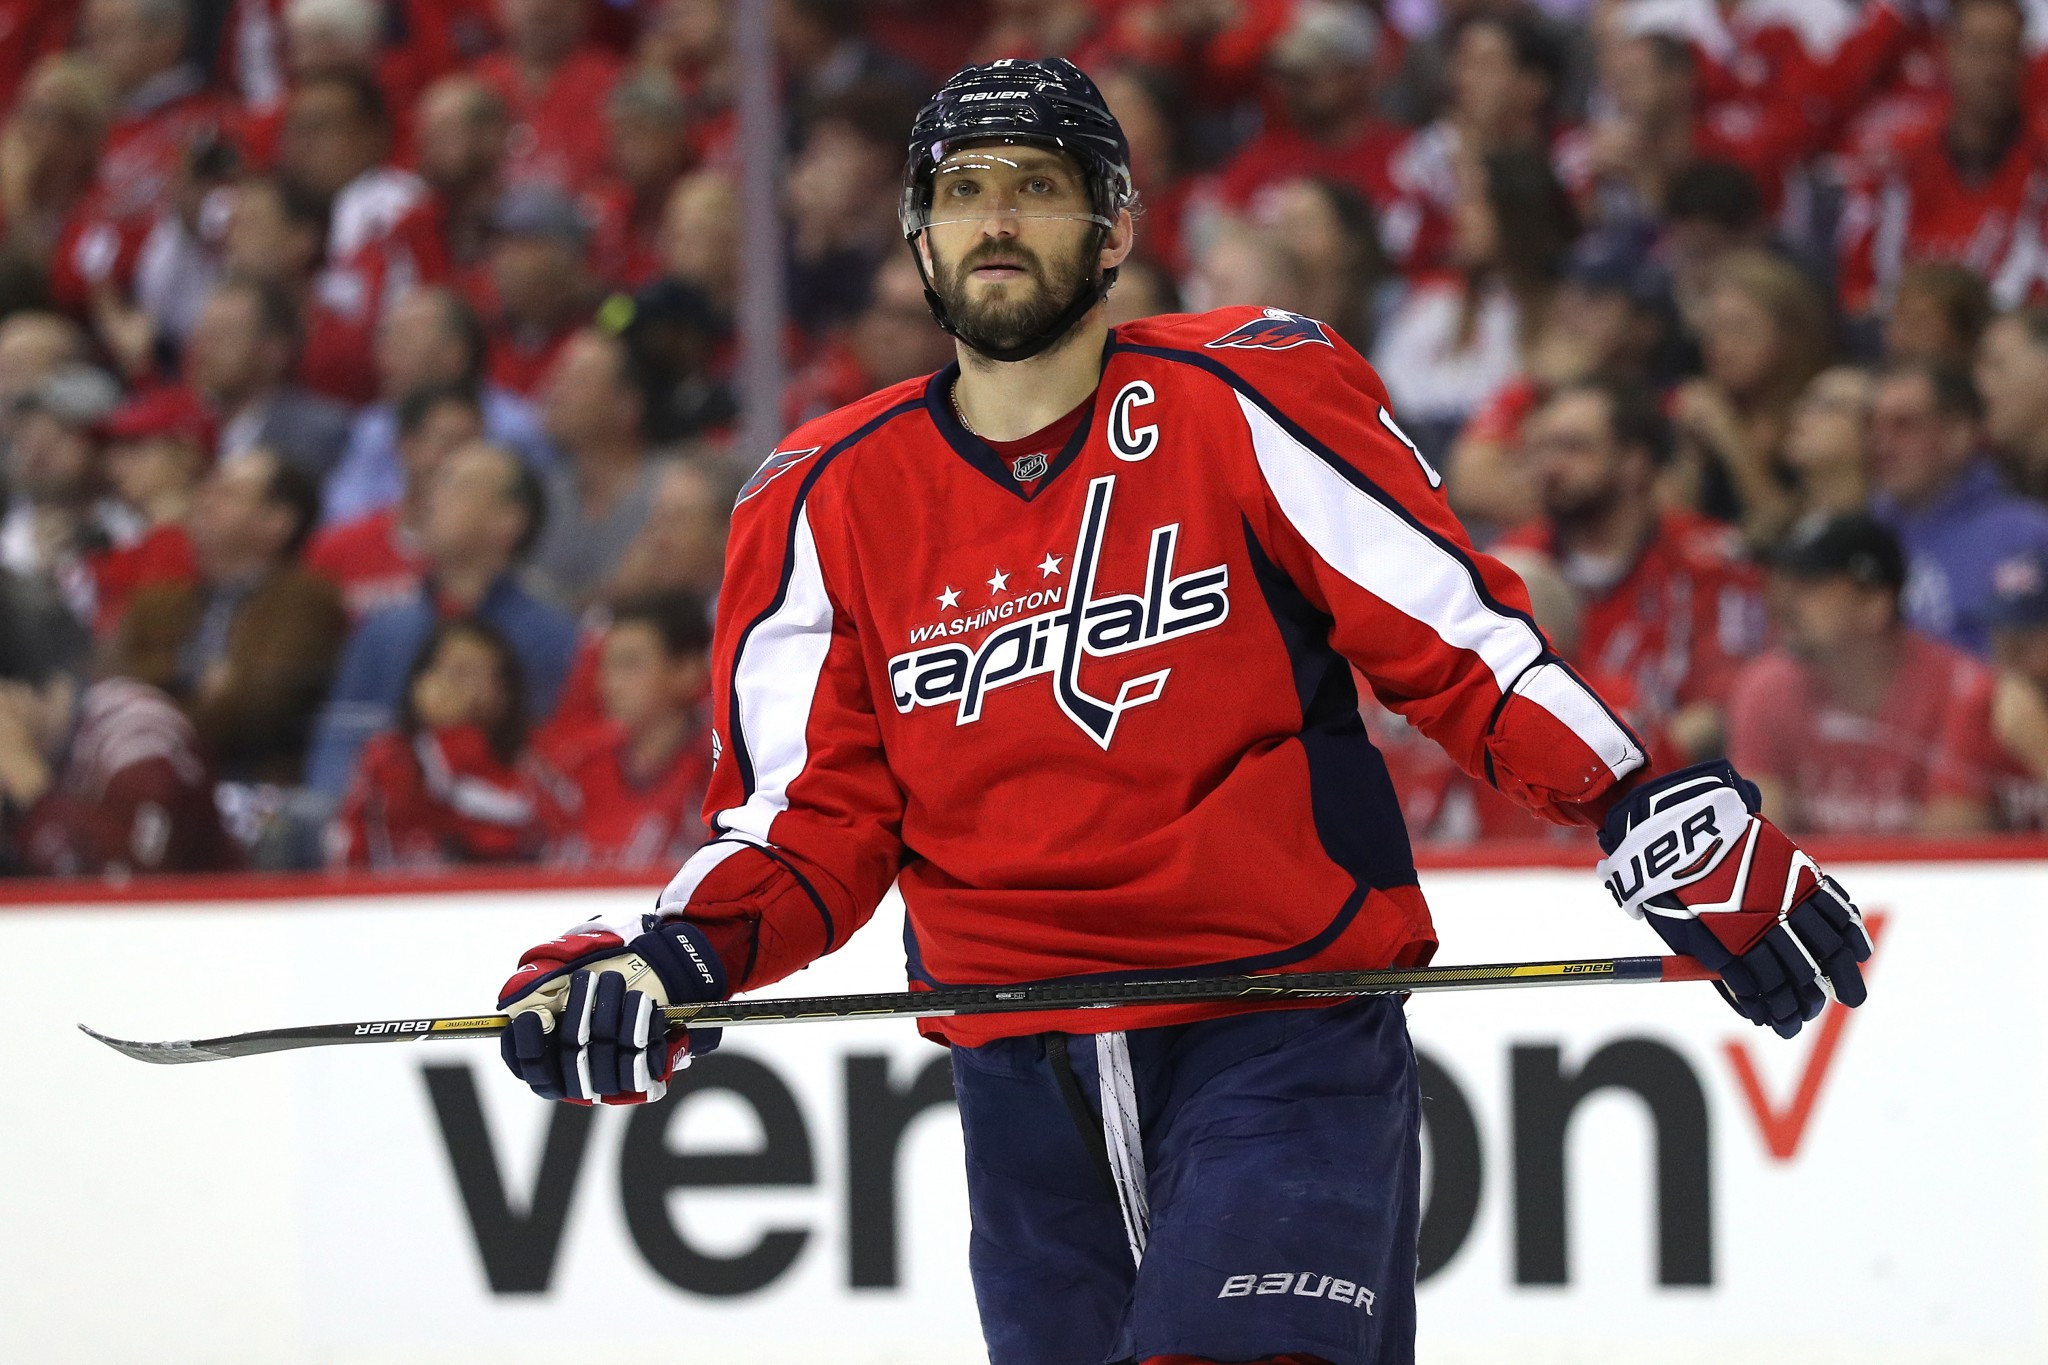 Ovechkin appears to concede defeat in efforts to compete at Pyeongchang 2018